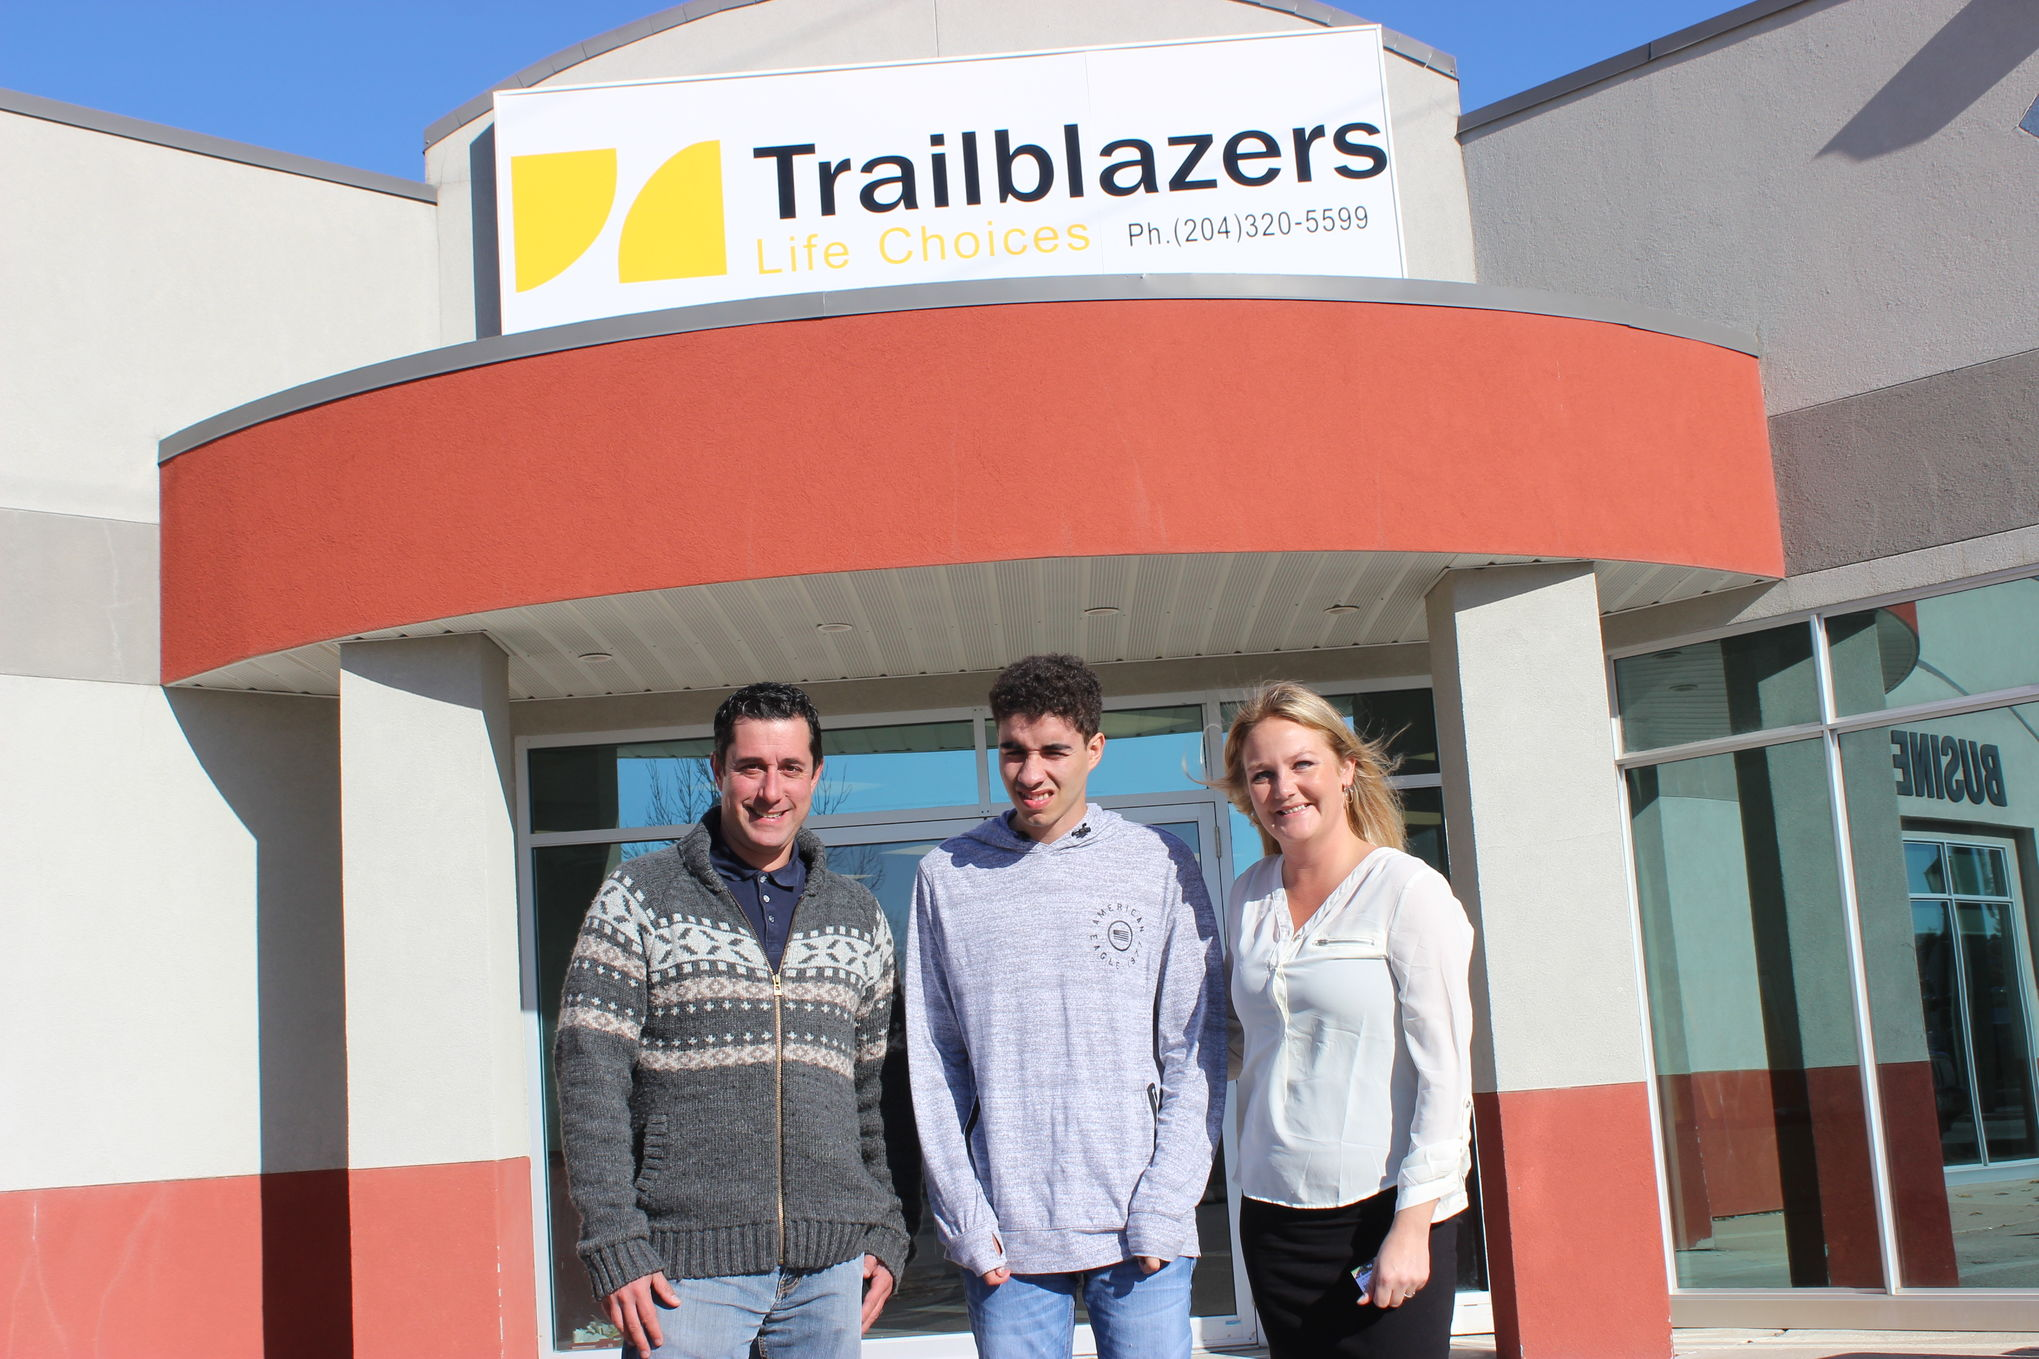 Trailblazers Life Choices executive director Andrew Morris, work experience participant Kanaba Hewitt, and residential and rural programs manager Rayann Kuban are seen outside the non-profit organization's new Steinbach location at B-197 Main Street. Trailblazers provides day services for adults living with disabilities. Its Steinbach expansion marks its first foray beyond Winnipeg.